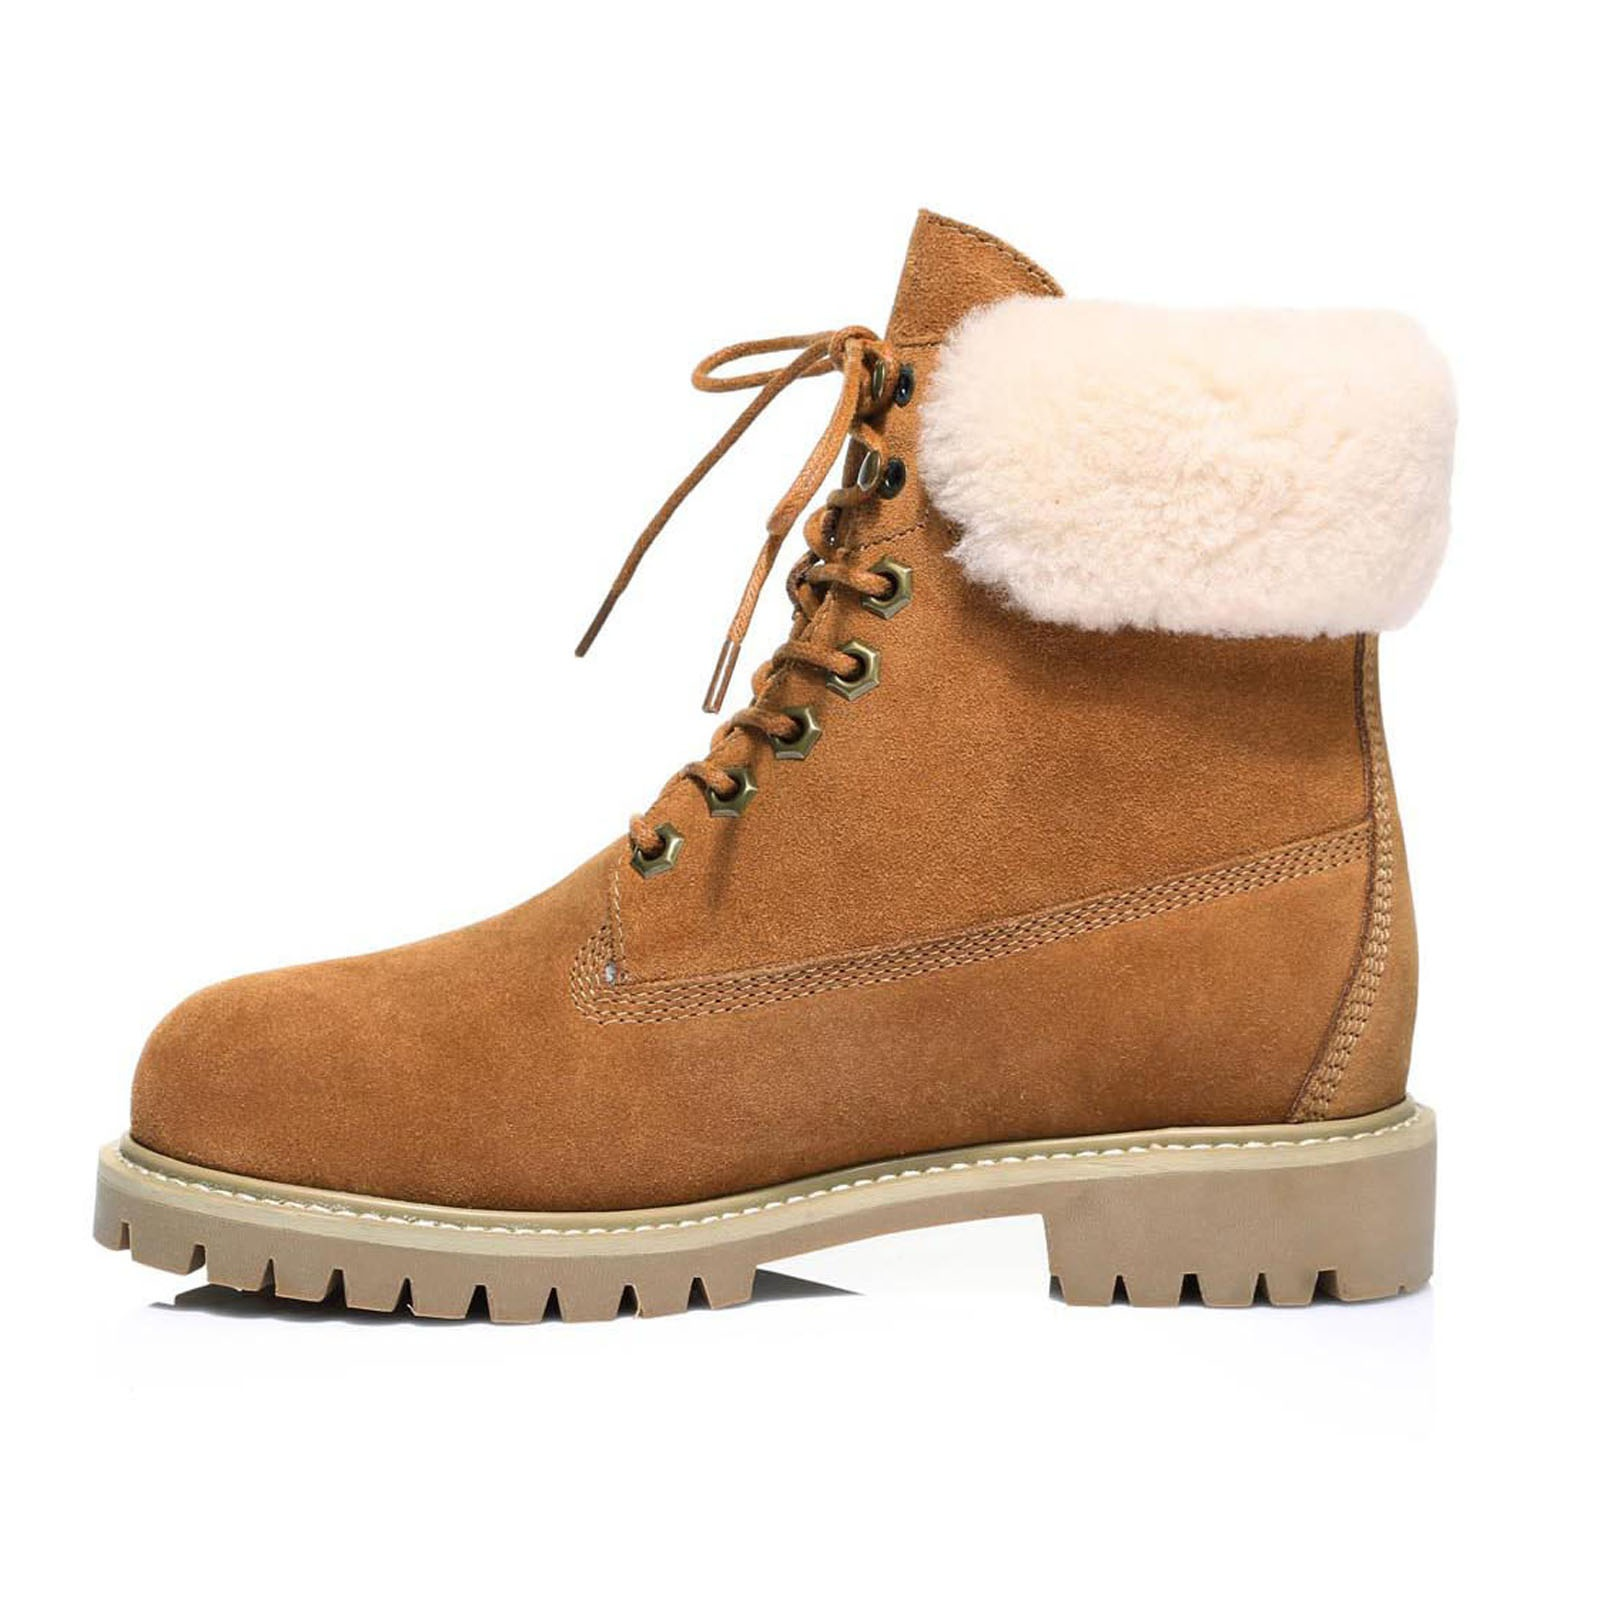 UGG-Boots-Australian-wool-Genuine-Hope-Ladies-Fashion-with-Front-Lace-lining thumbnail 6